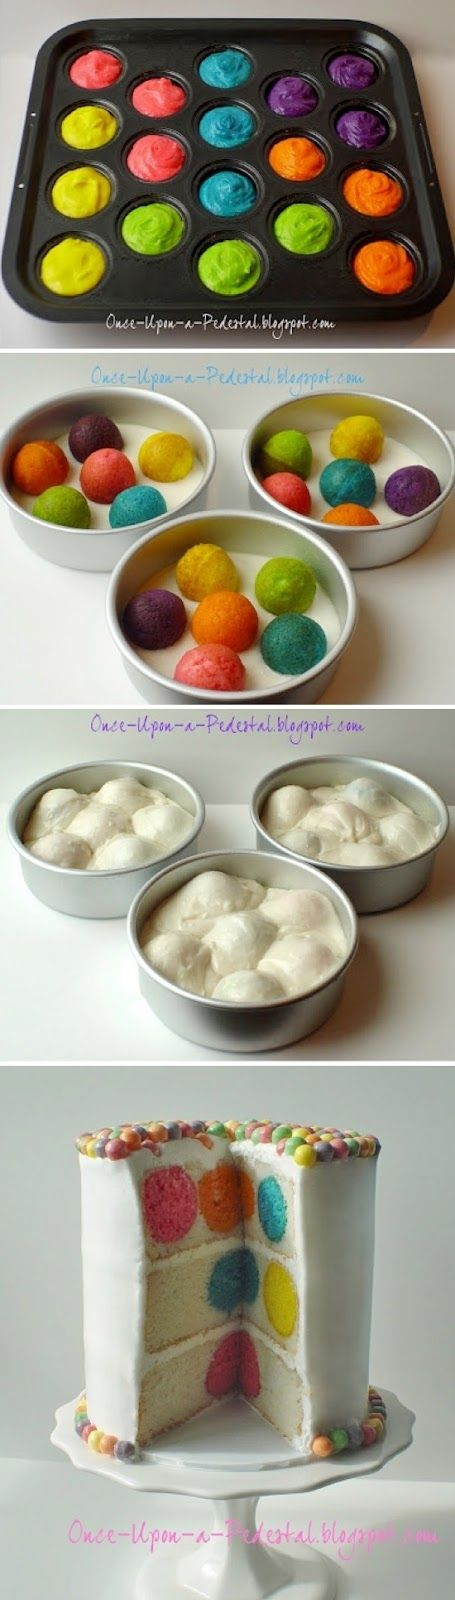 Try with natural food dyes...Once Upon A Pedestal: Surprise Inside Cake - Hidden Polka Dots from Bake Pop Pan